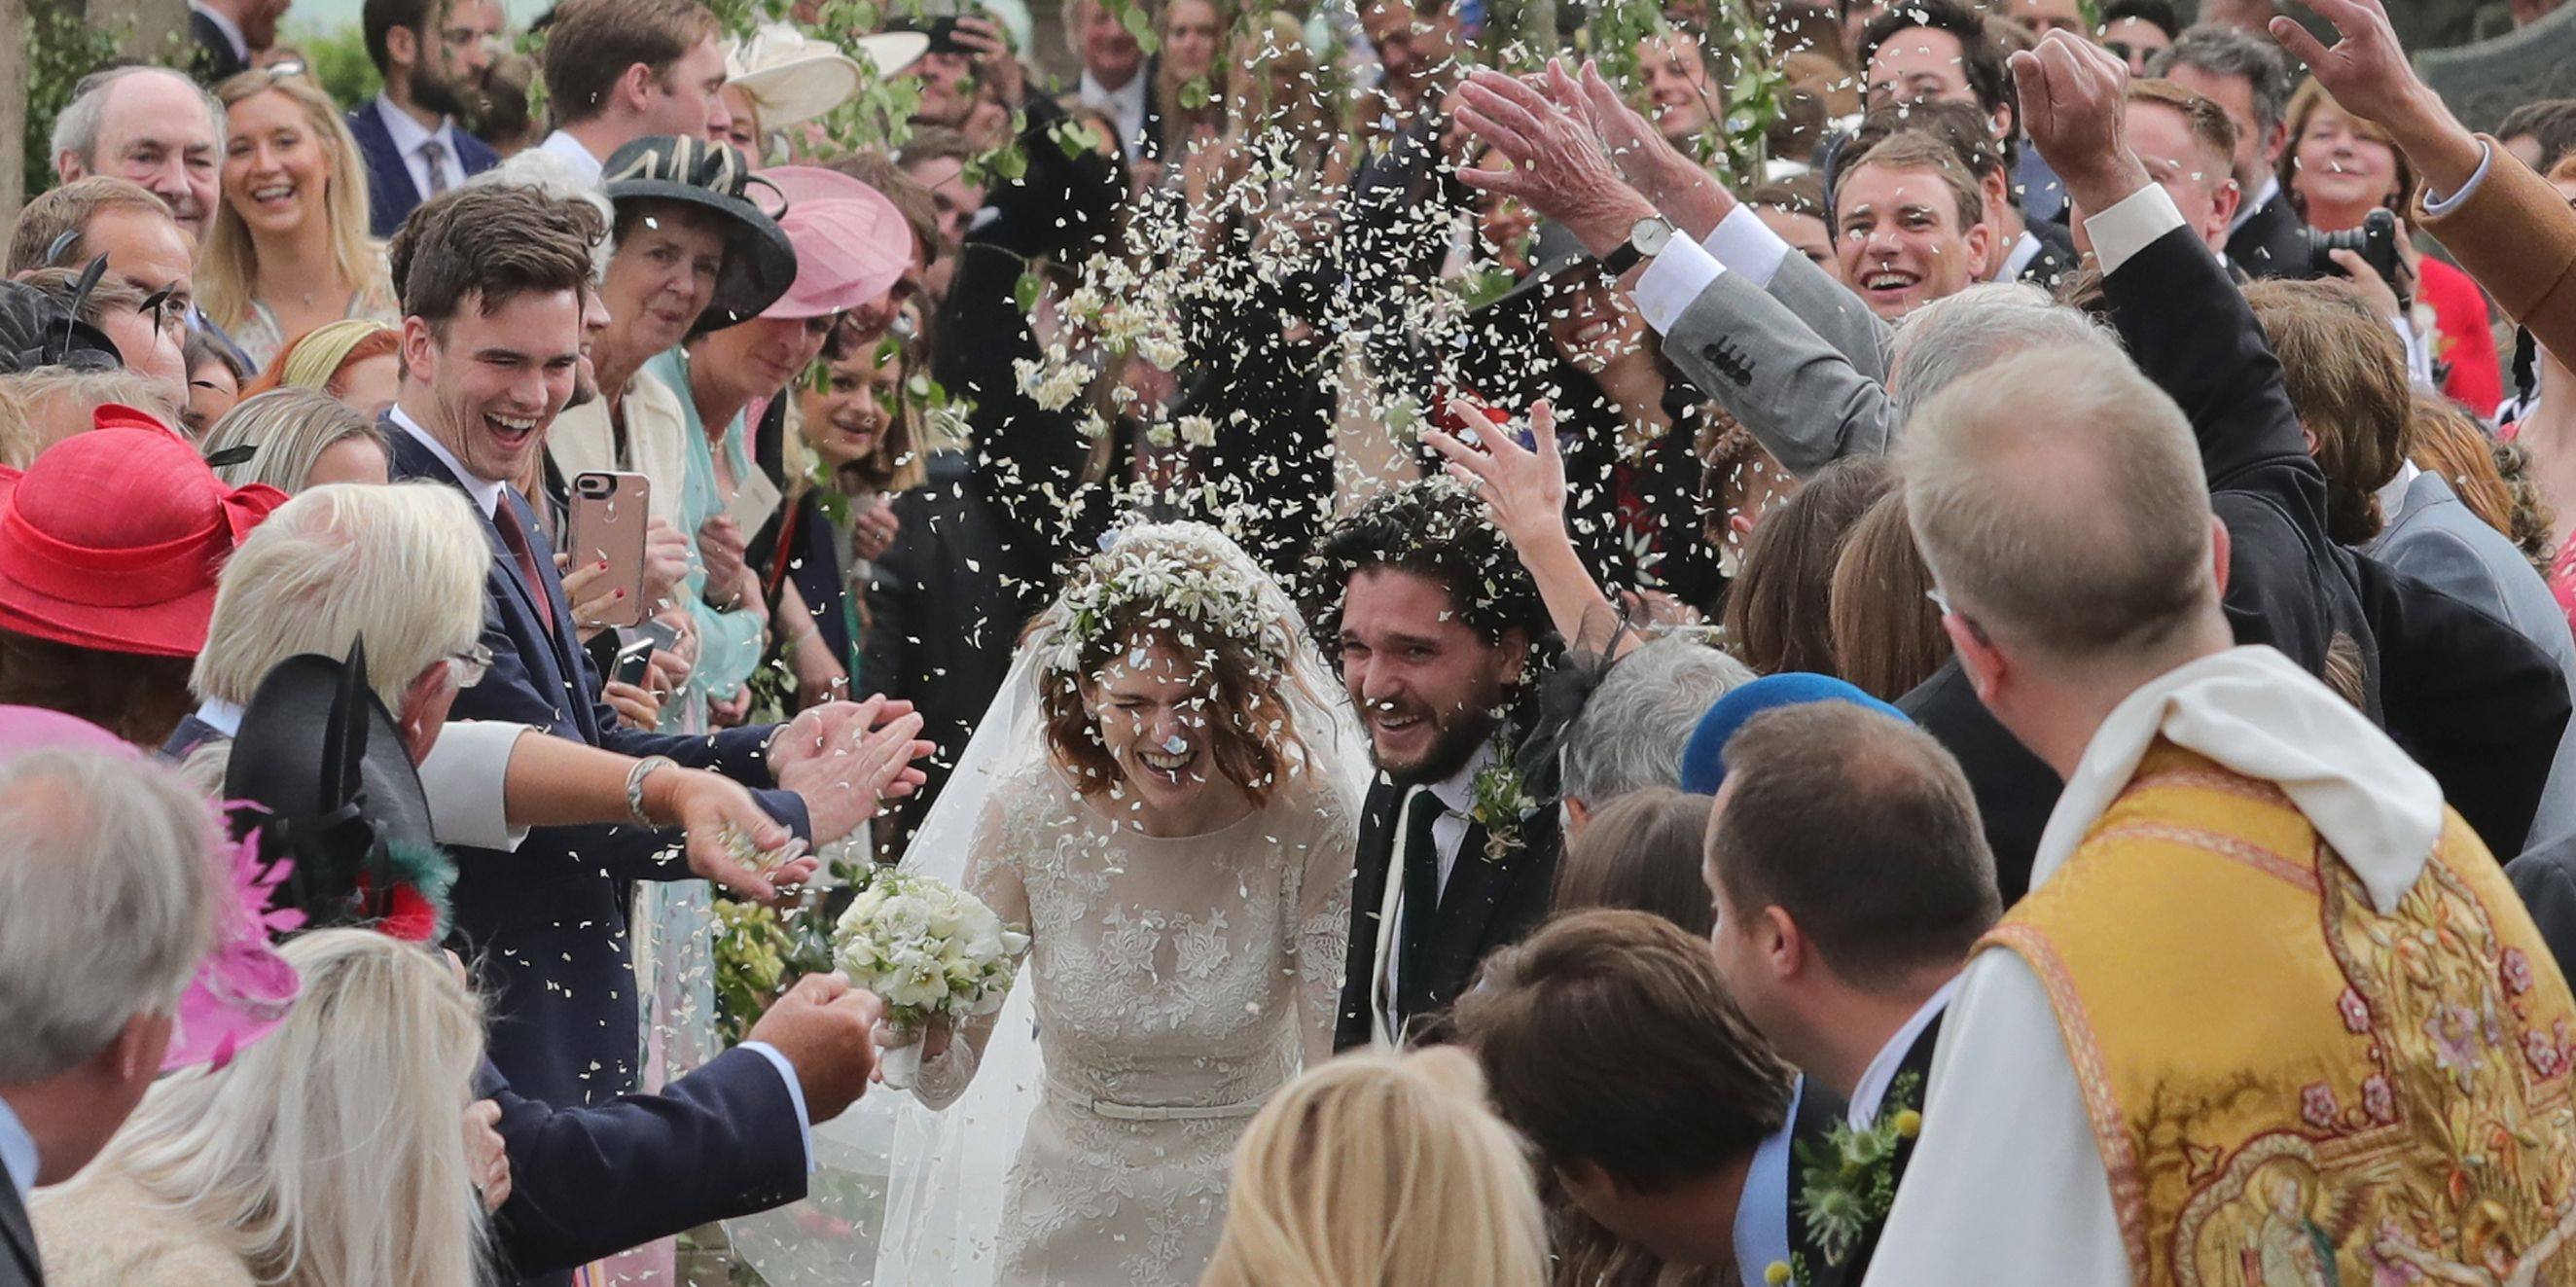 Ð?аÑ?Ñ?инки по запÑ?оÑ?Ñ? kit harington wedding